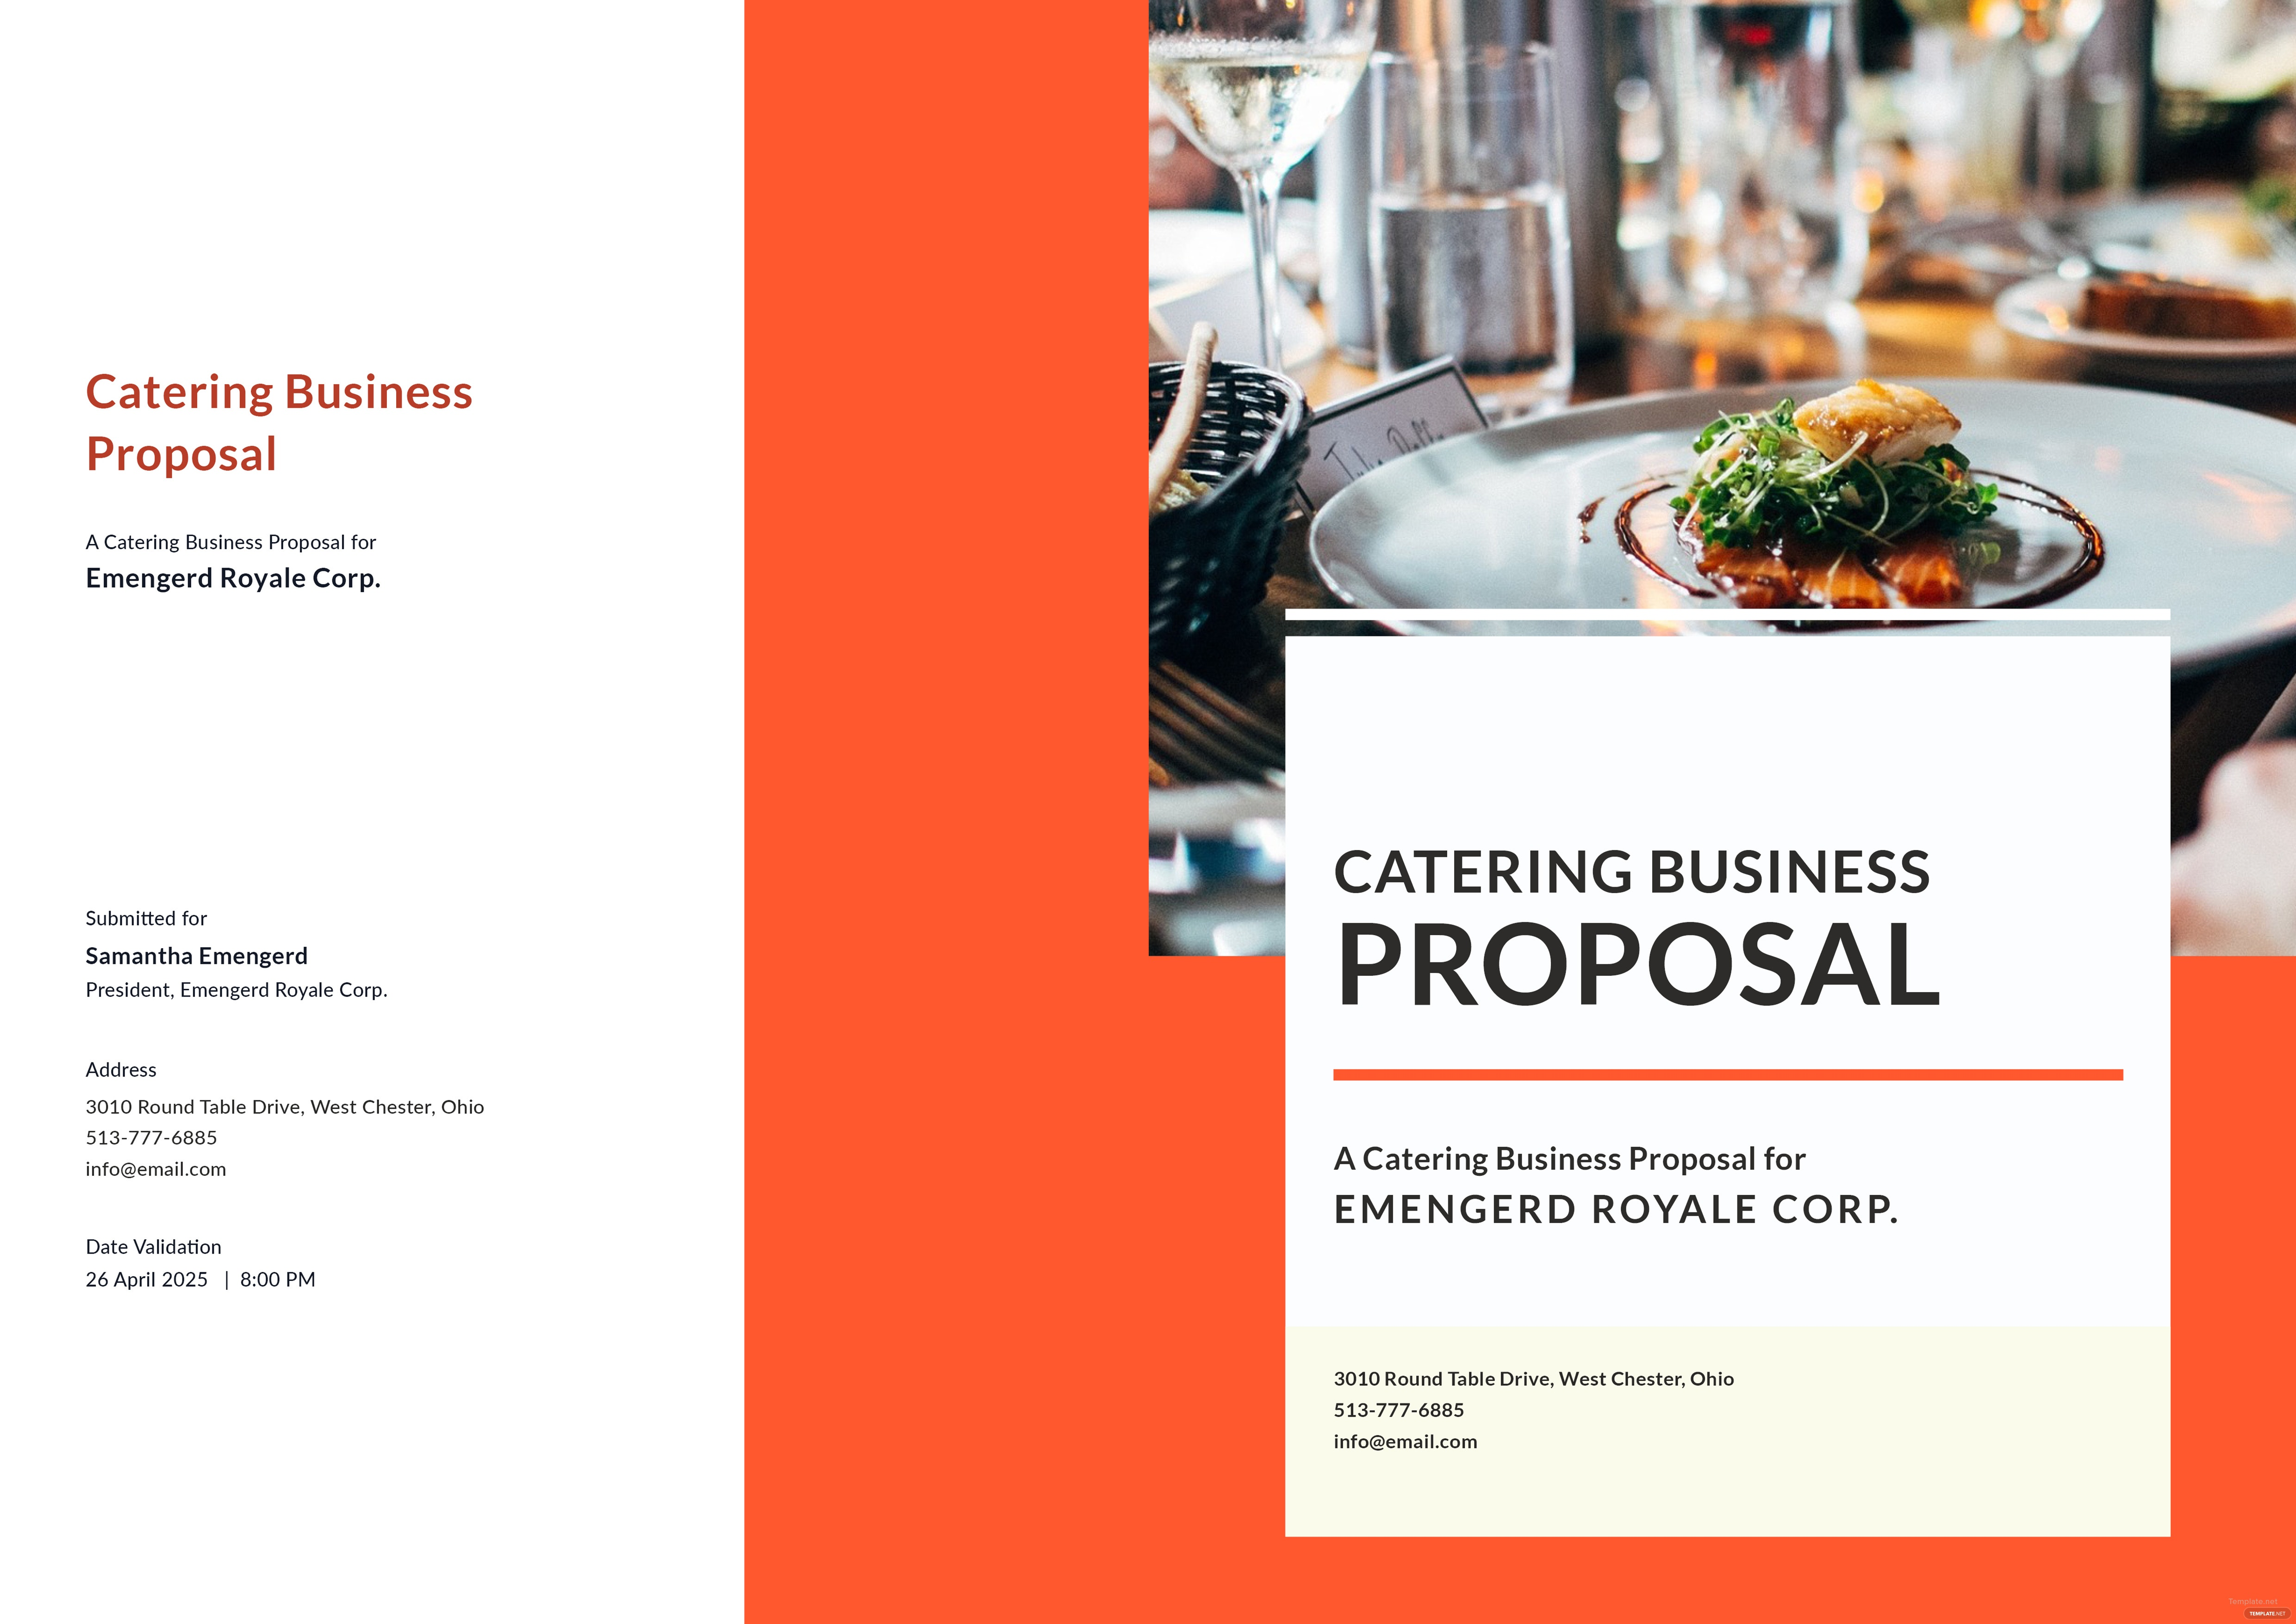 Catering business proposal template in microsoft word publisher click to see full template catering business proposal accmission Image collections